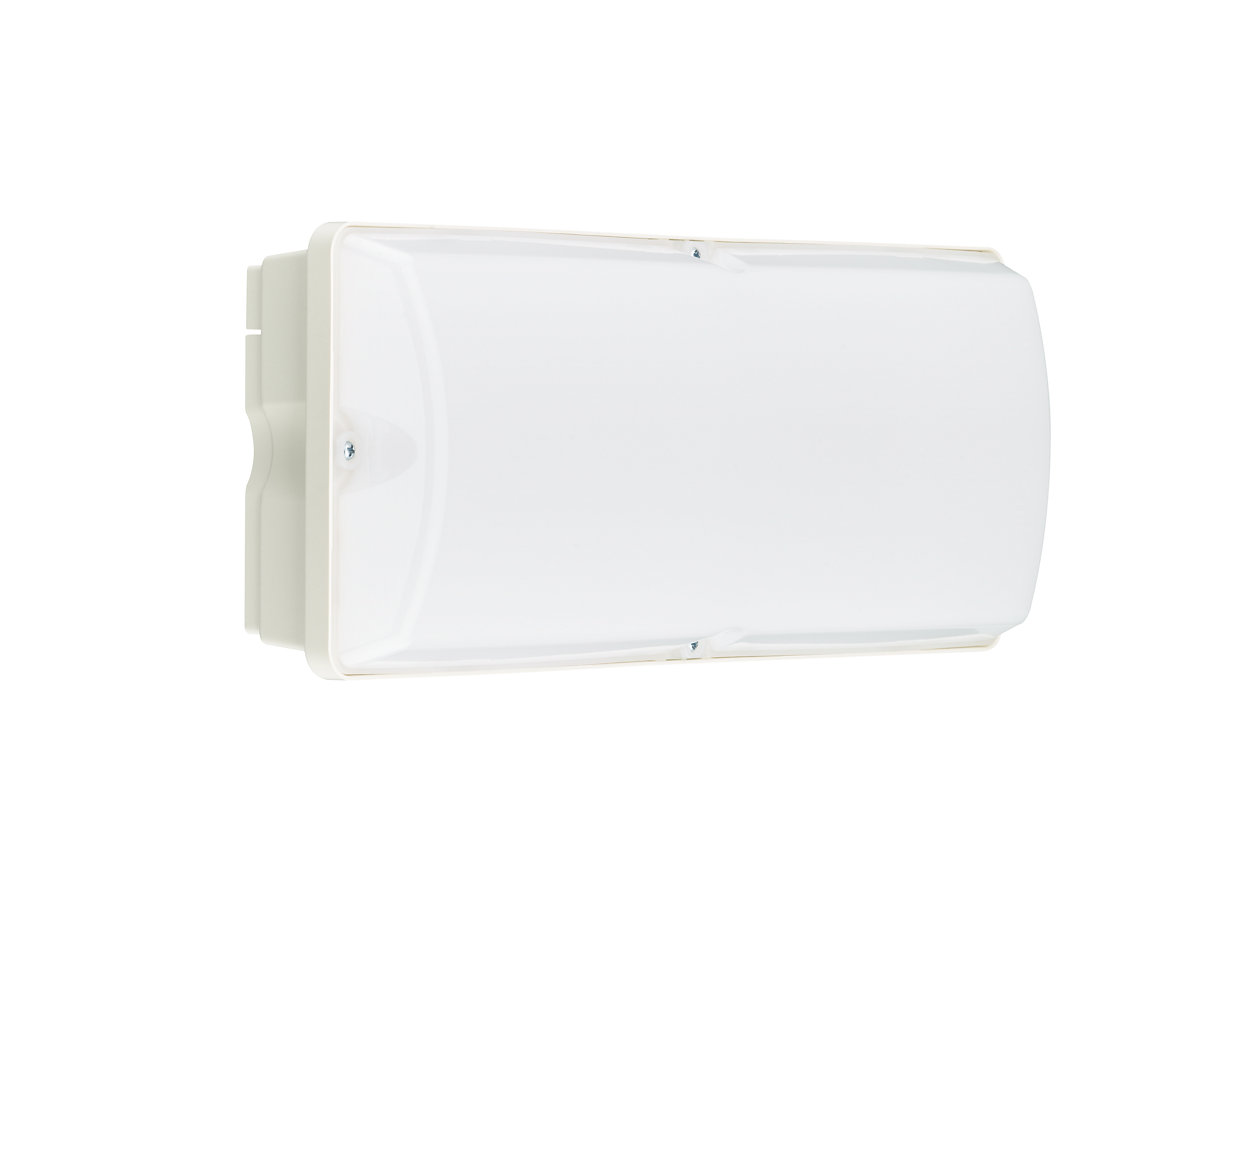 Ledinaire Square Wall-mounted - Energy efficient, professional wall-mounted luminaire for general lighting applications.